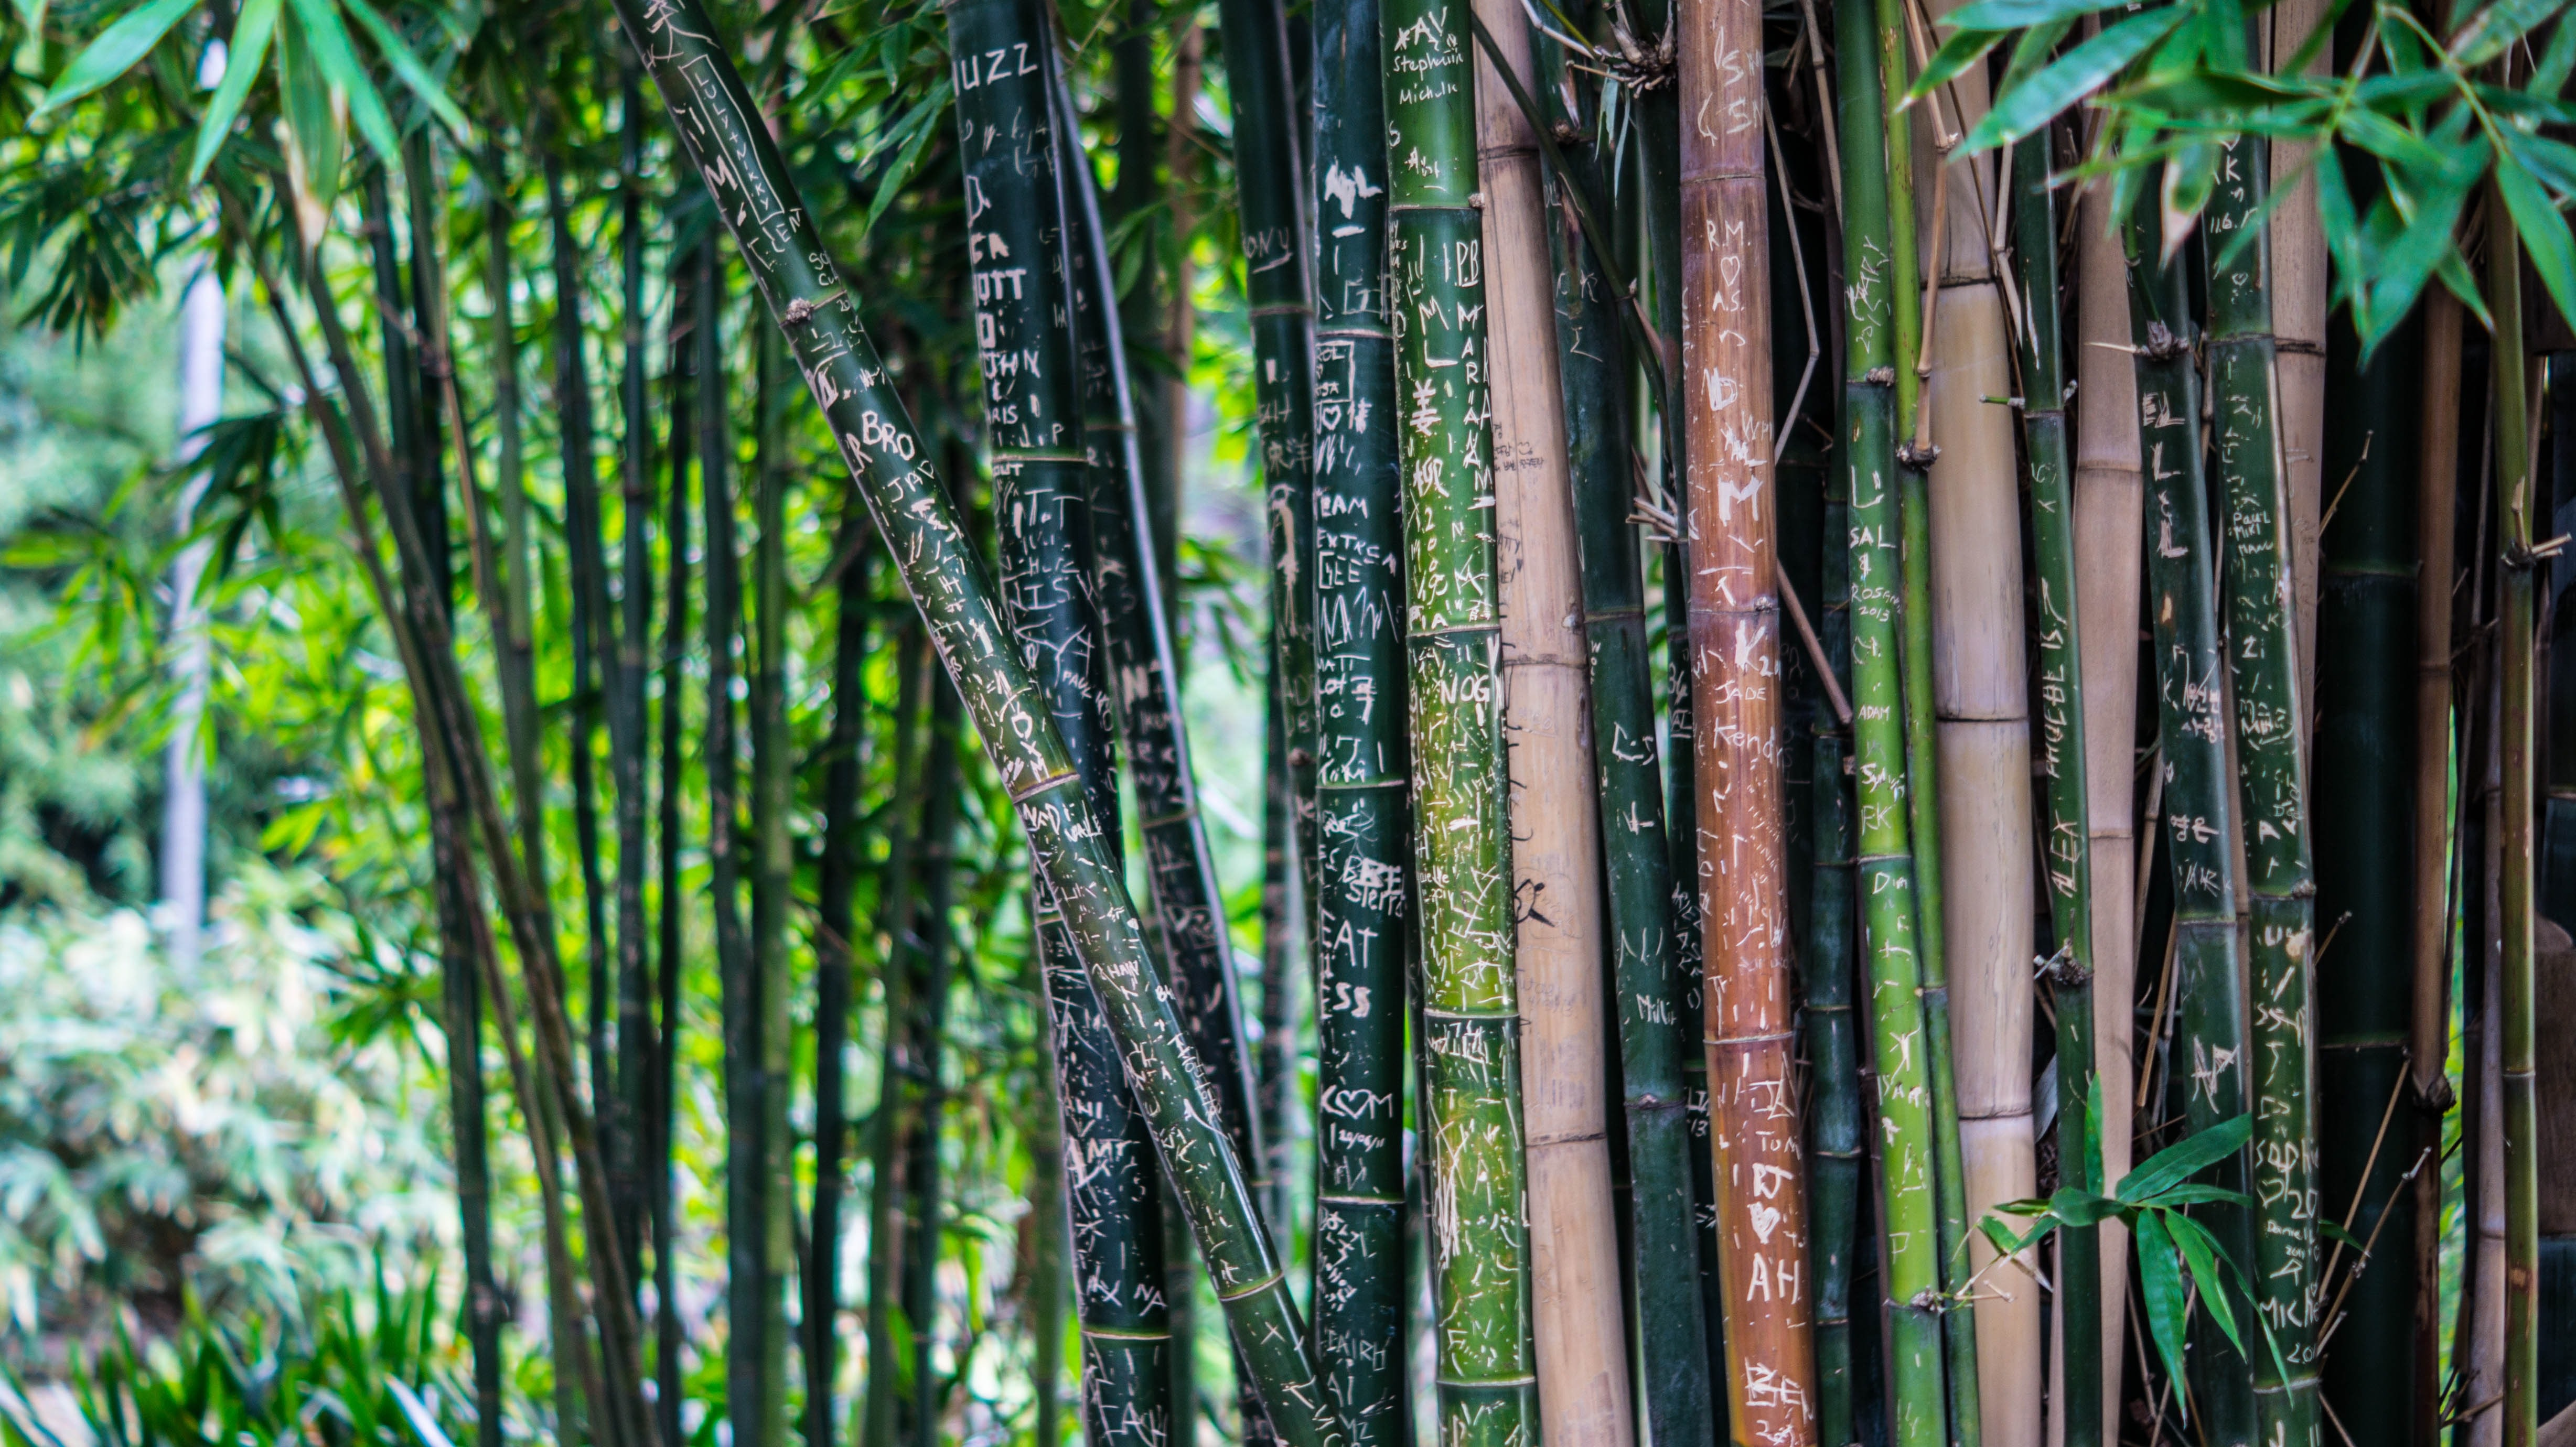 Green Leaf Bamboo Tree at Daytime, Bamboo, Forest, Macro, Nature, HQ Photo